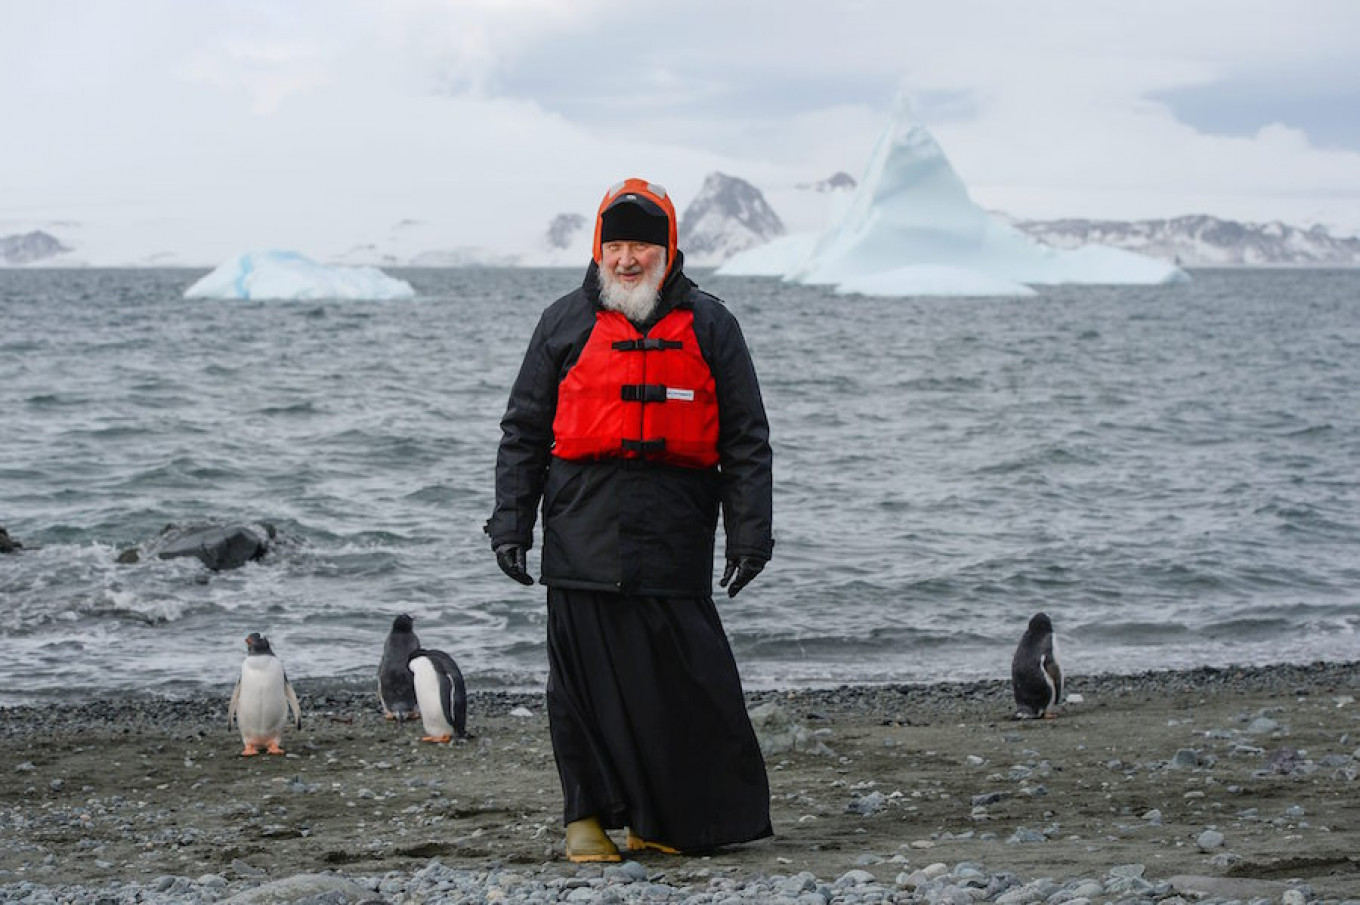 Patriarch Kirill poses for a photo at Russia's Bellingshausen Antarctic station. Russian Orthodox Church Patriarchate Press Office / TASS